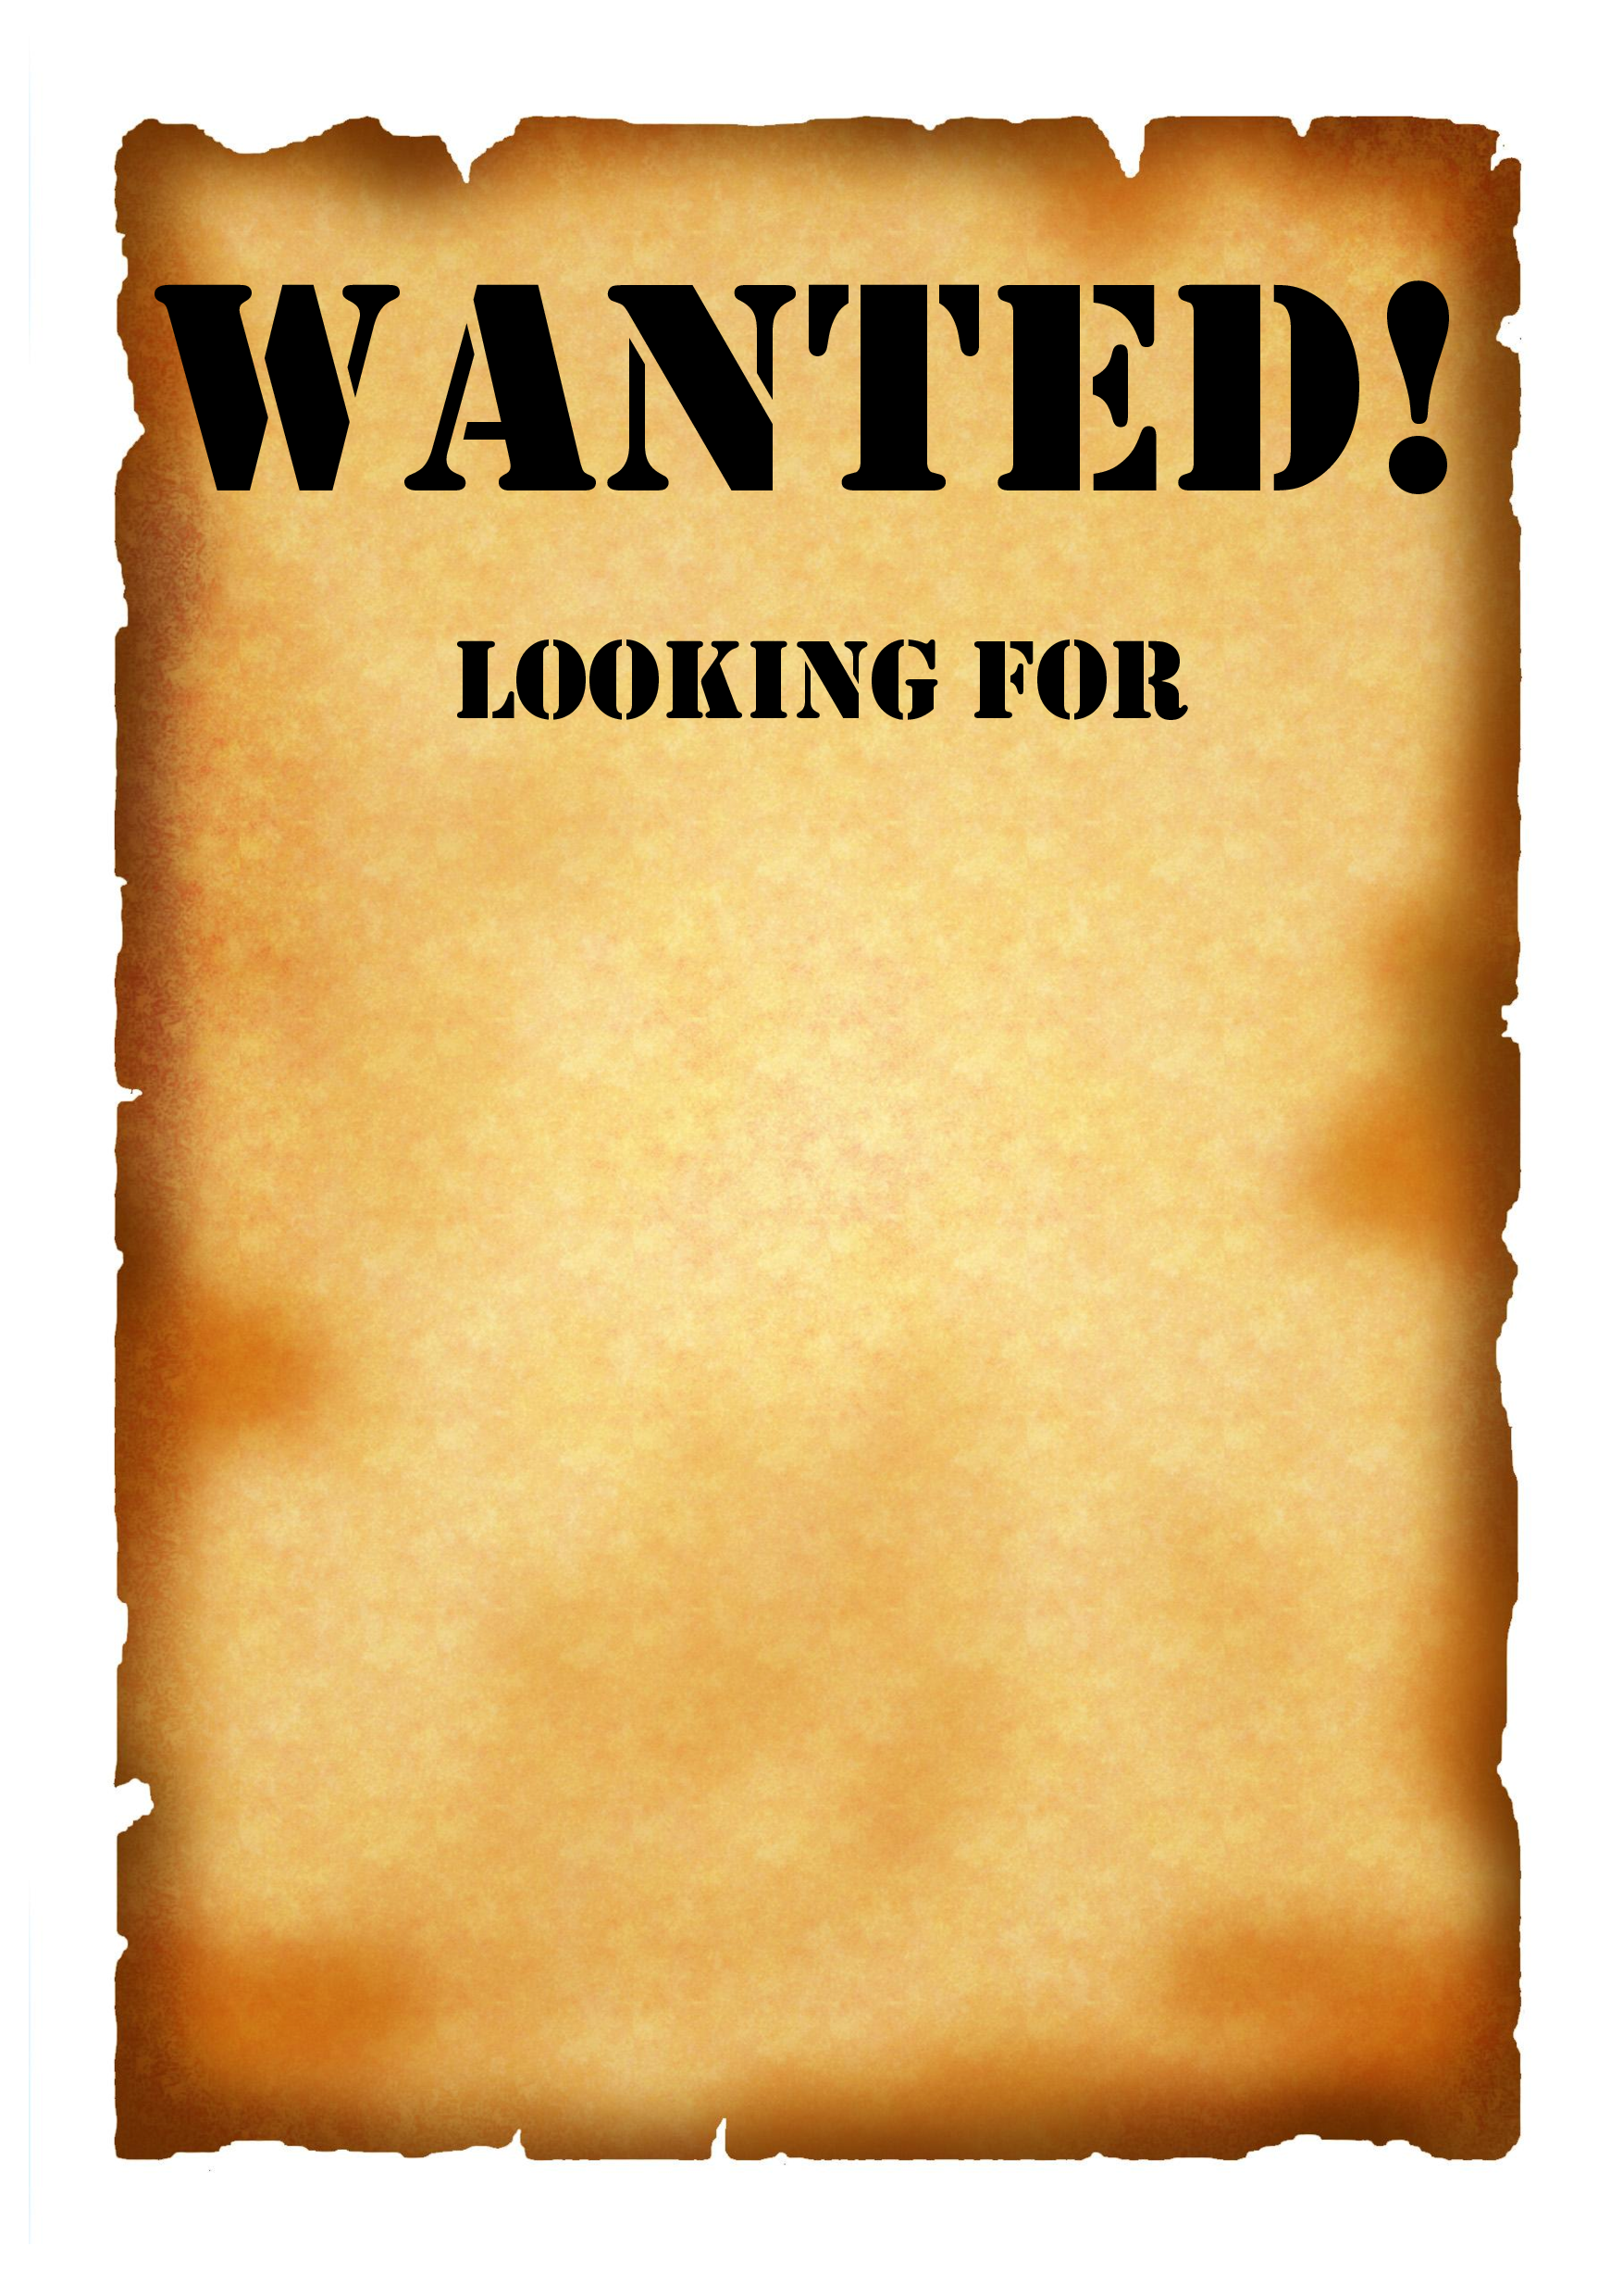 Wanted Wallpaper Wallpapersafari